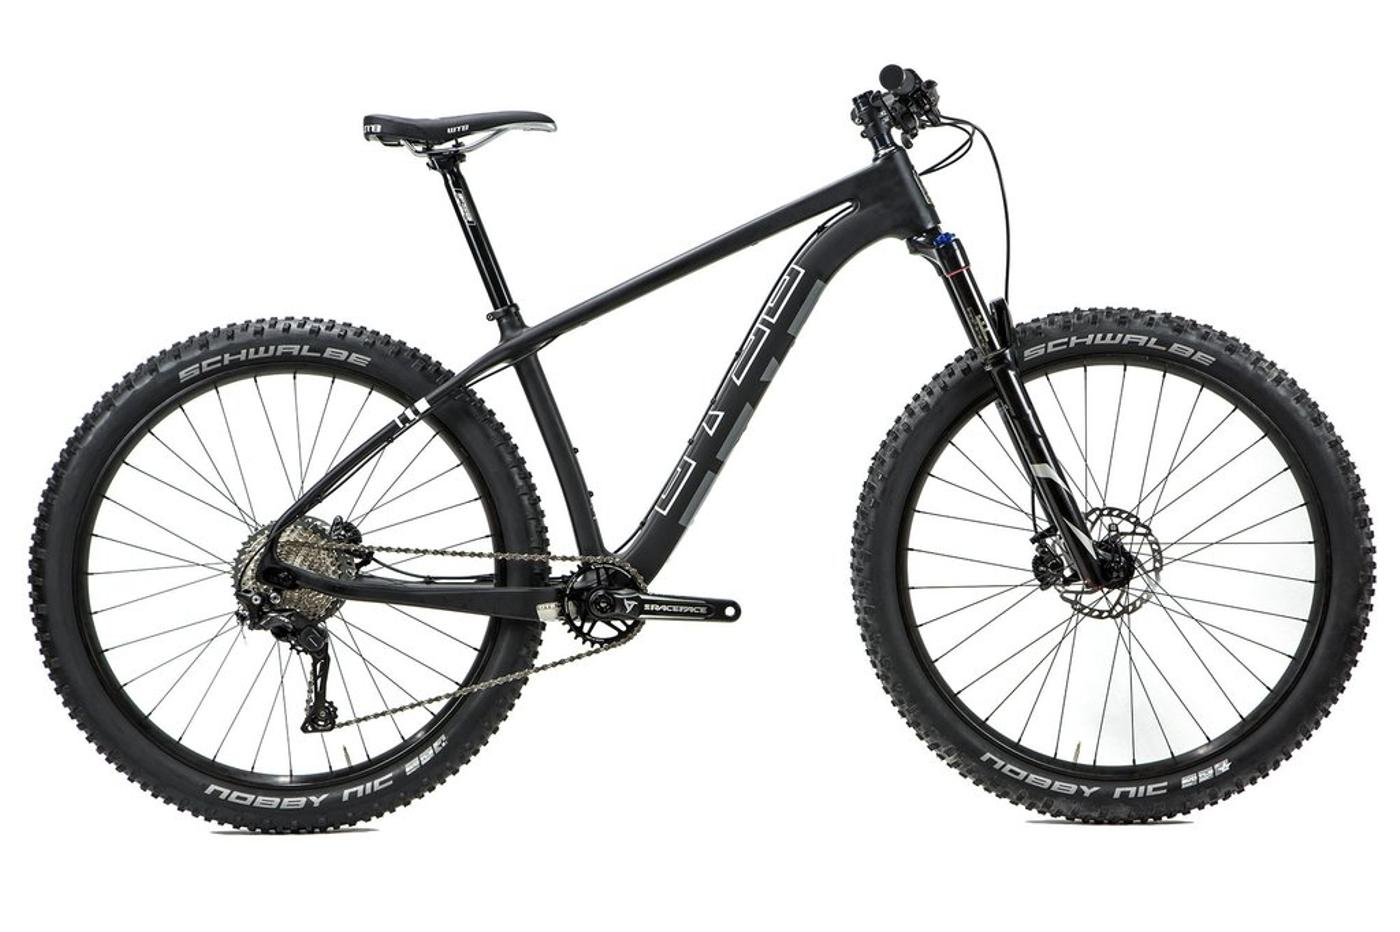 Otso Cycles' Versatile Voytek Carbon Hardtail is In Stock Now!